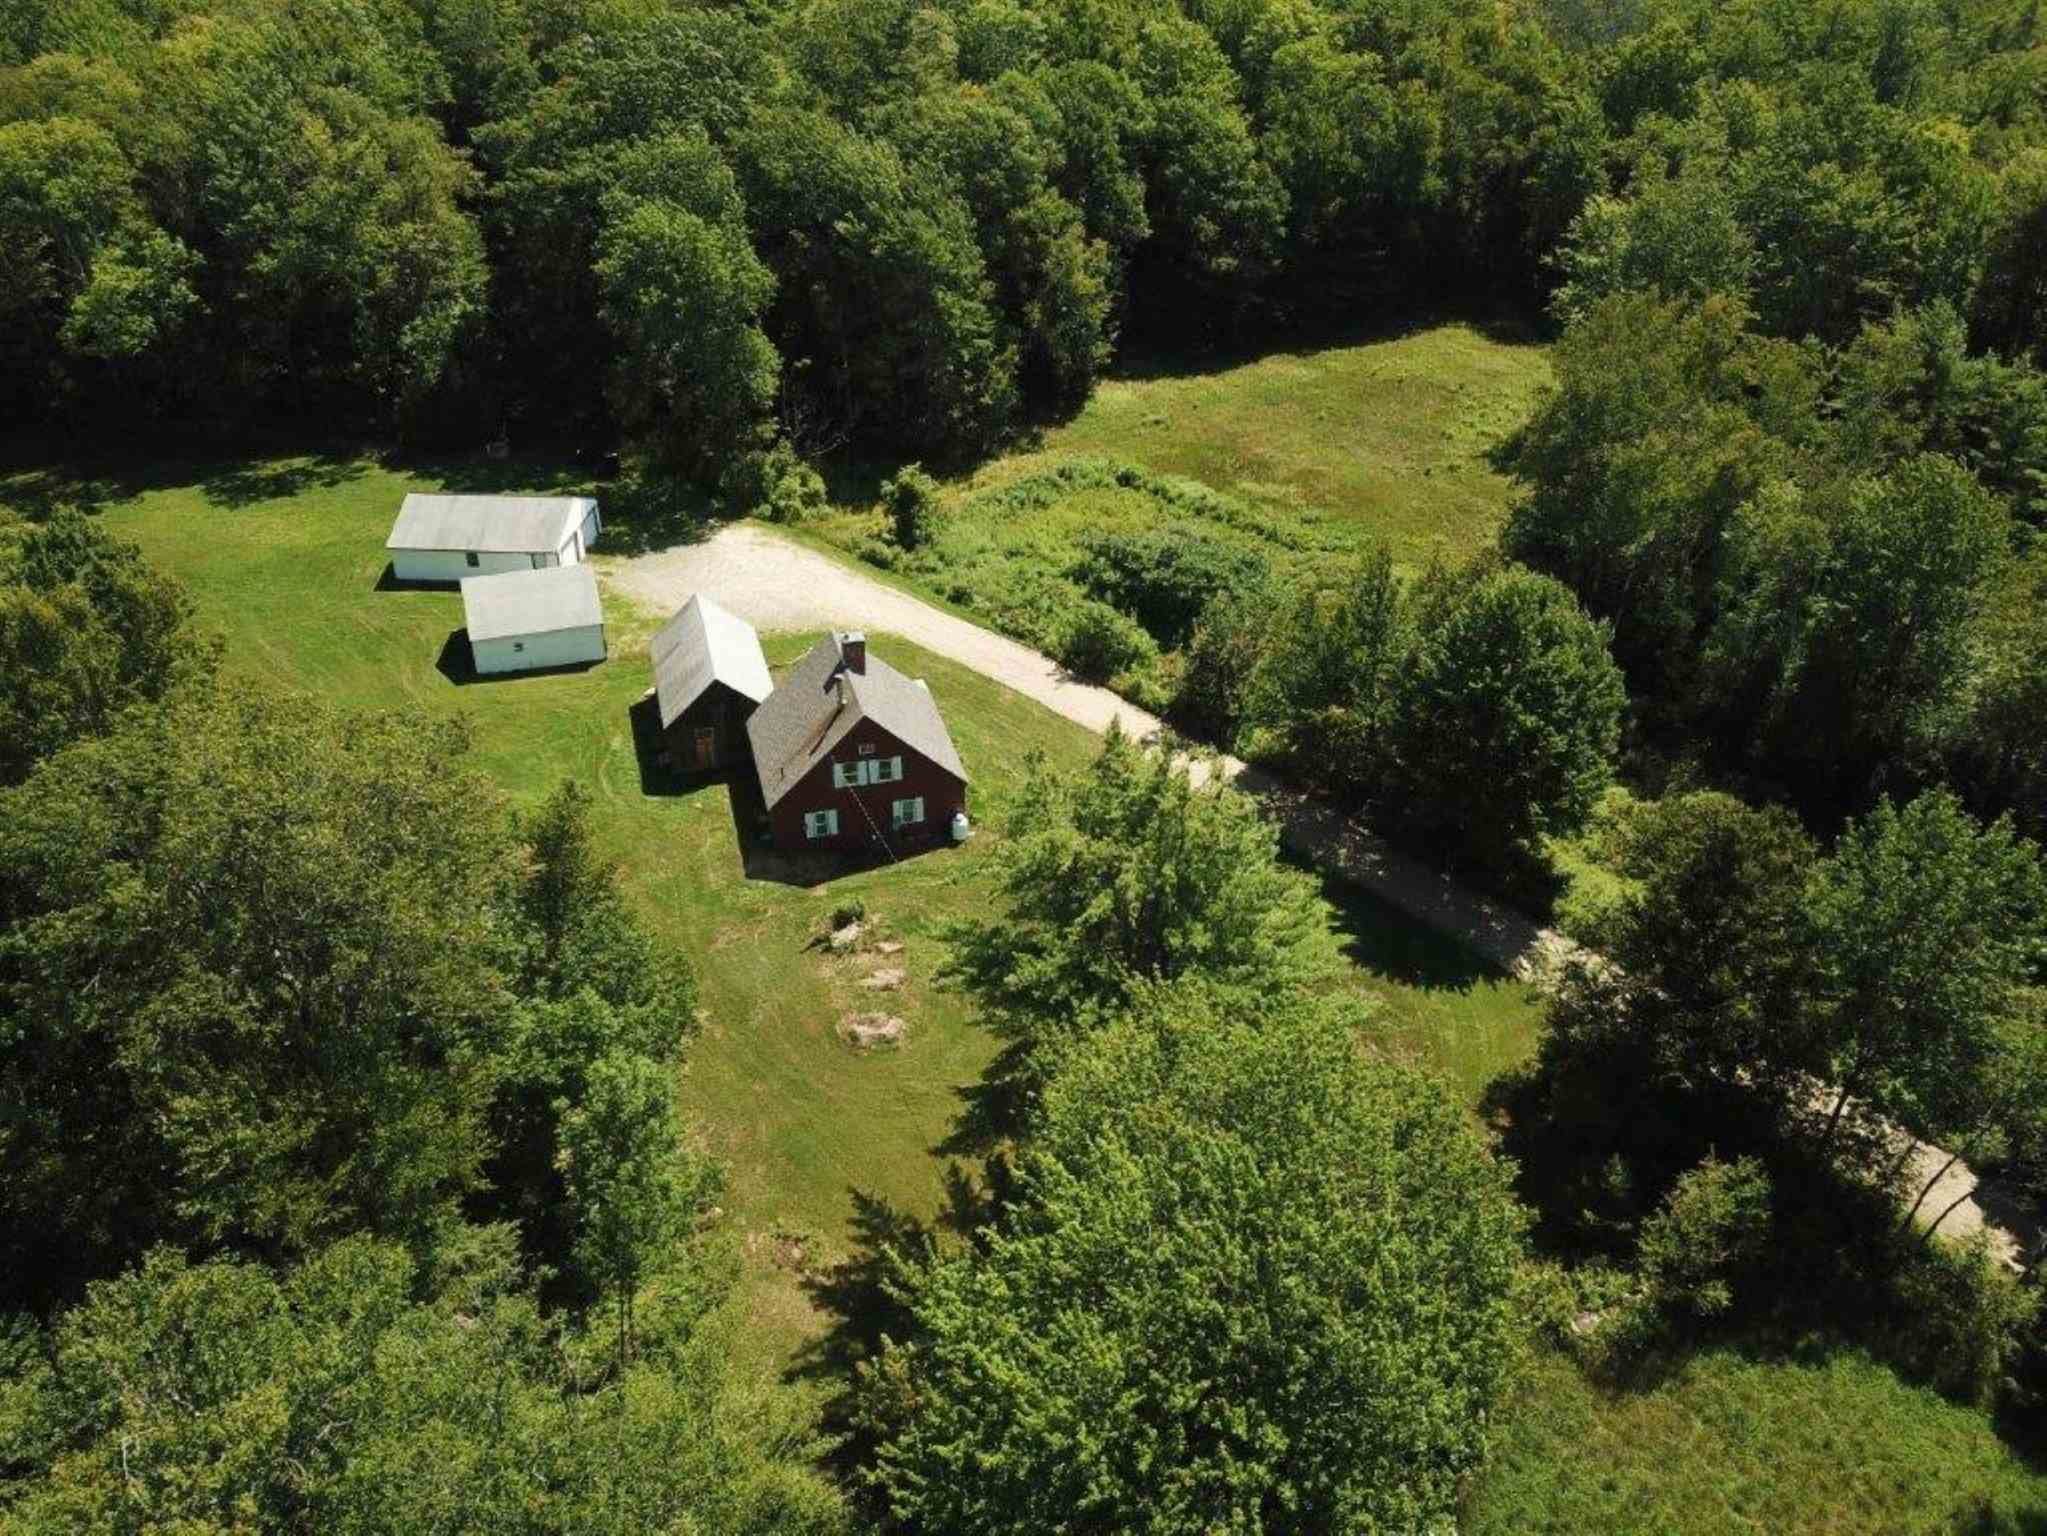 MLS 4819967: 125 Corey Mine Road, Sullivan NH